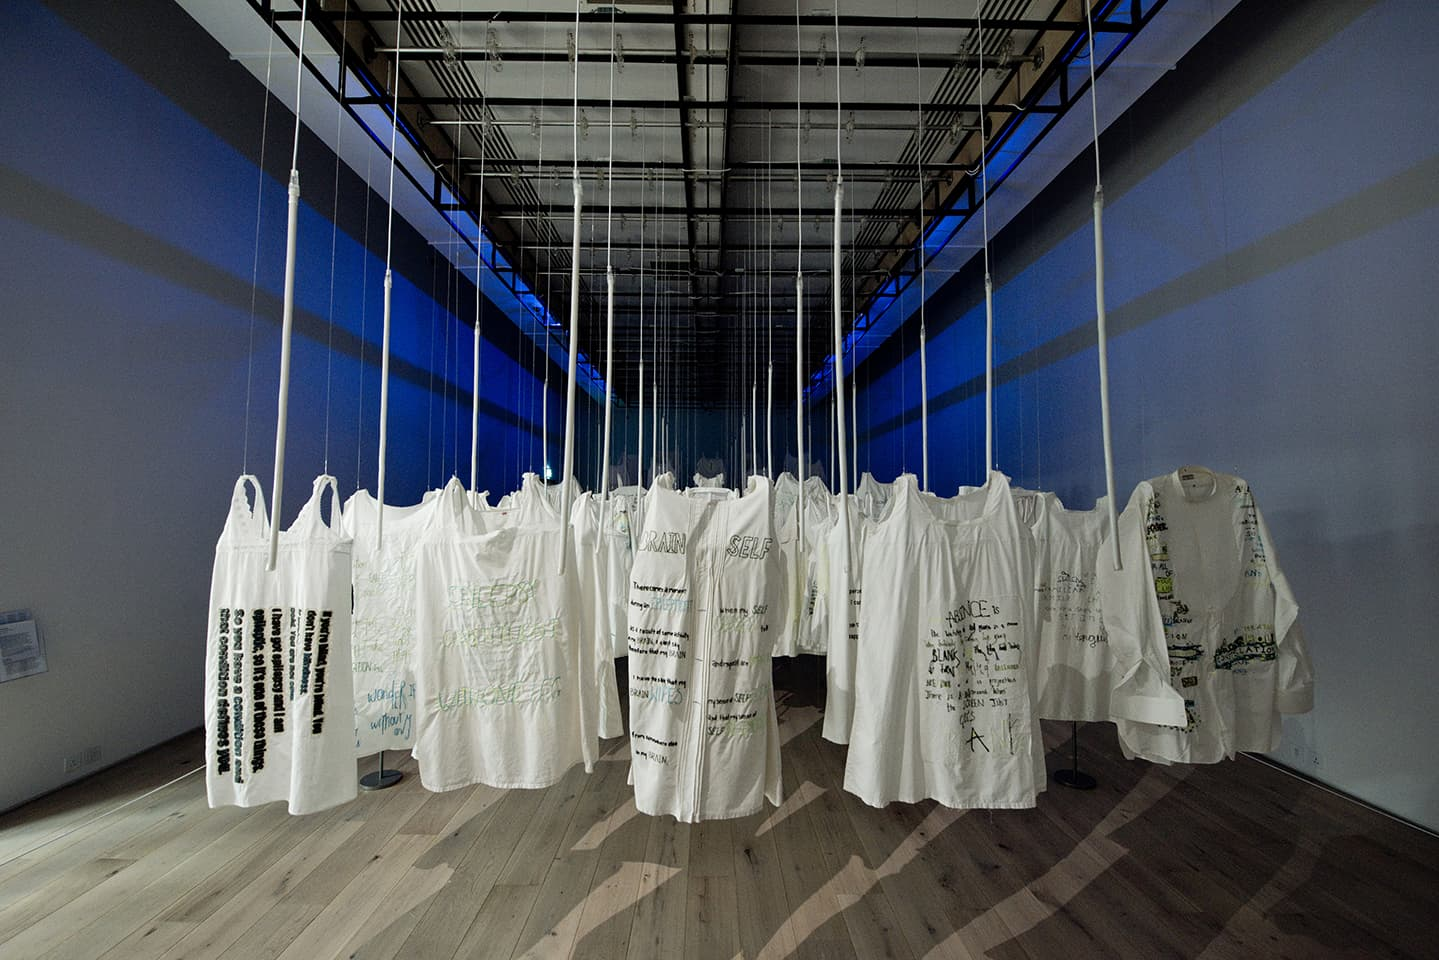 <strong>Out of the Blue</strong>, installation of 106 items of embroidered underwear, Susan Aldworth, 2020. Photograph by Colin Davison at Hatton Gallery.